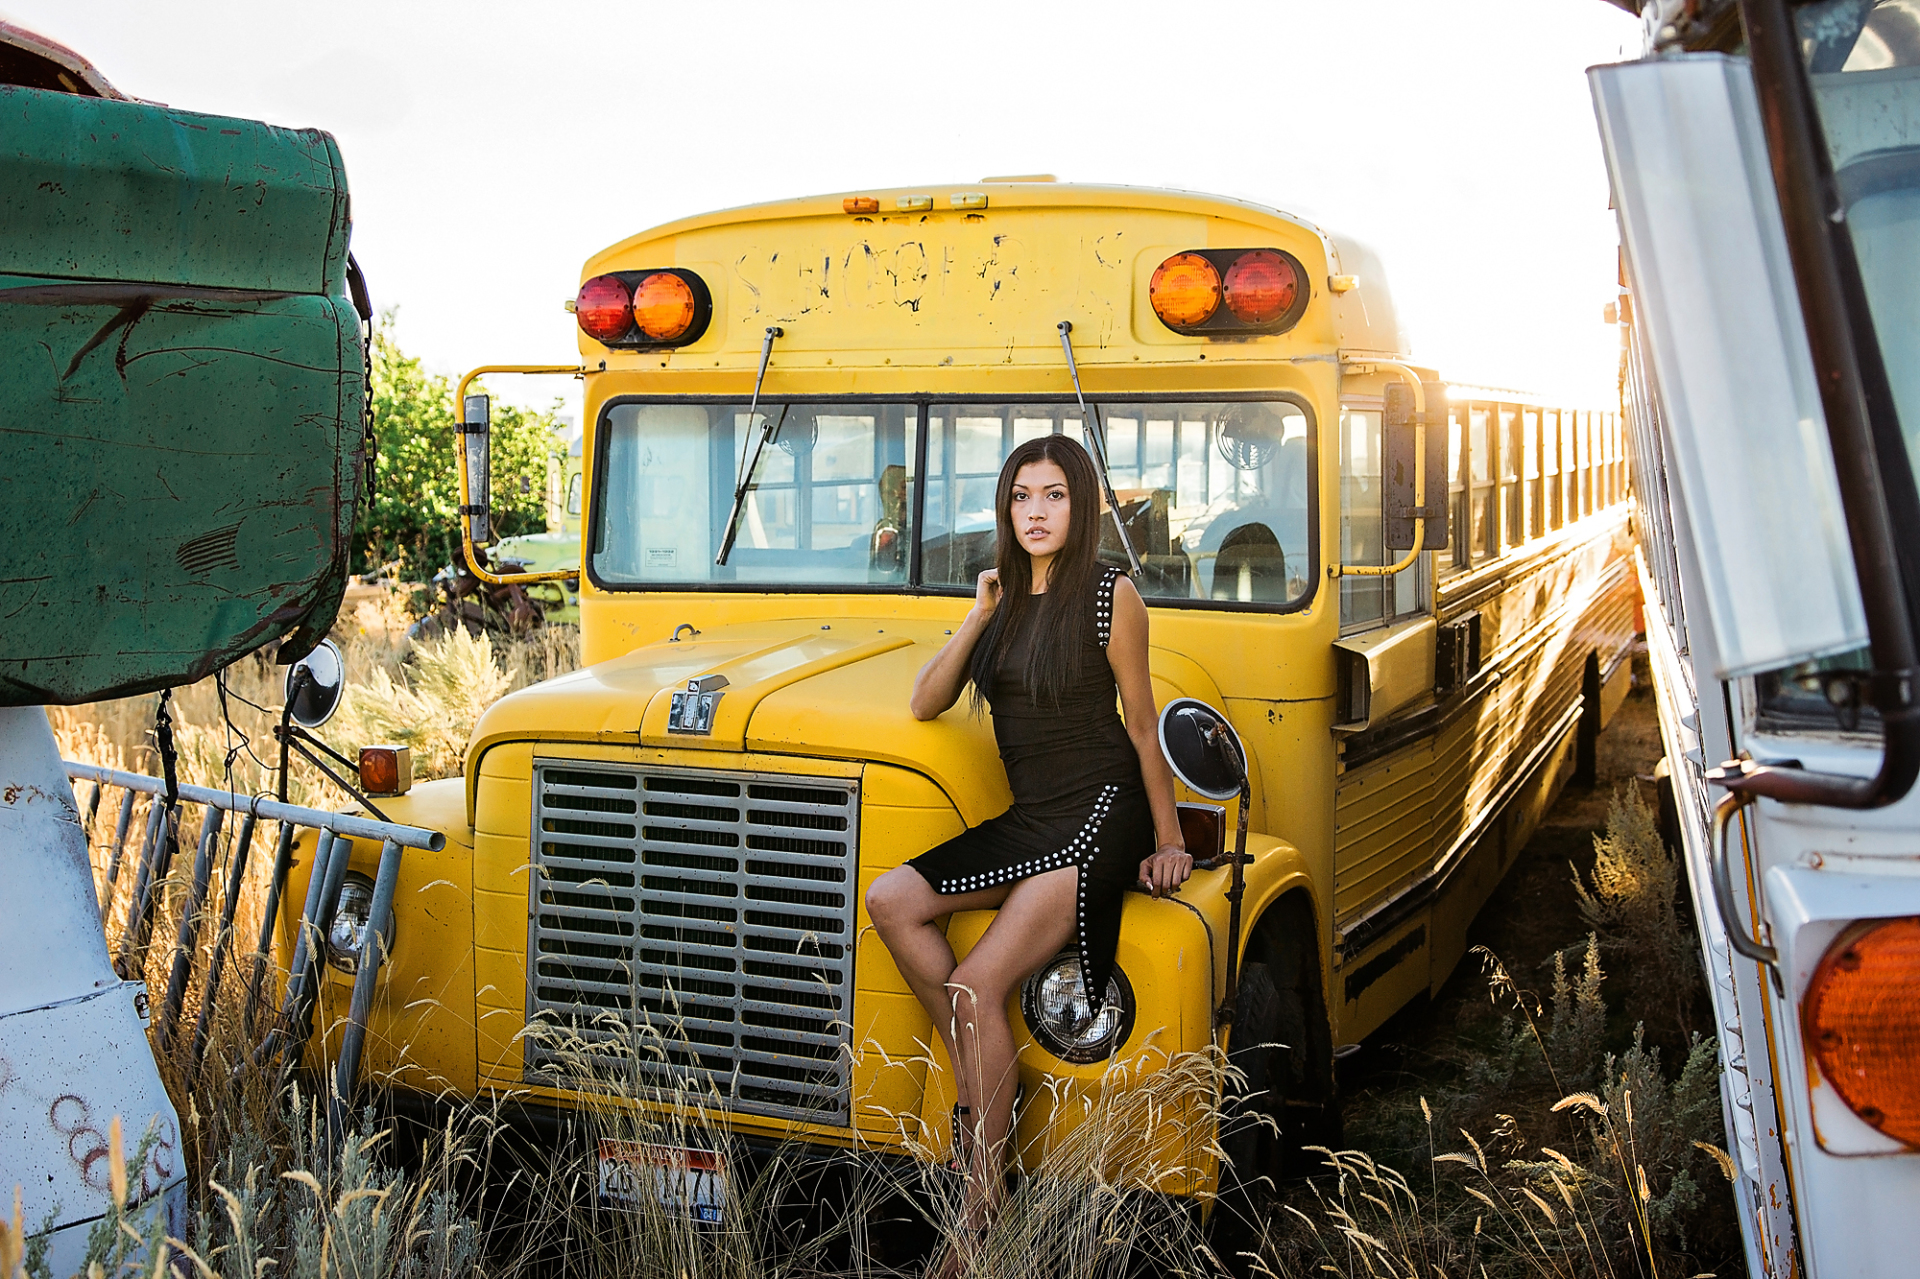 This photo shoes a model posing in front of a school bus in a car graveyard.